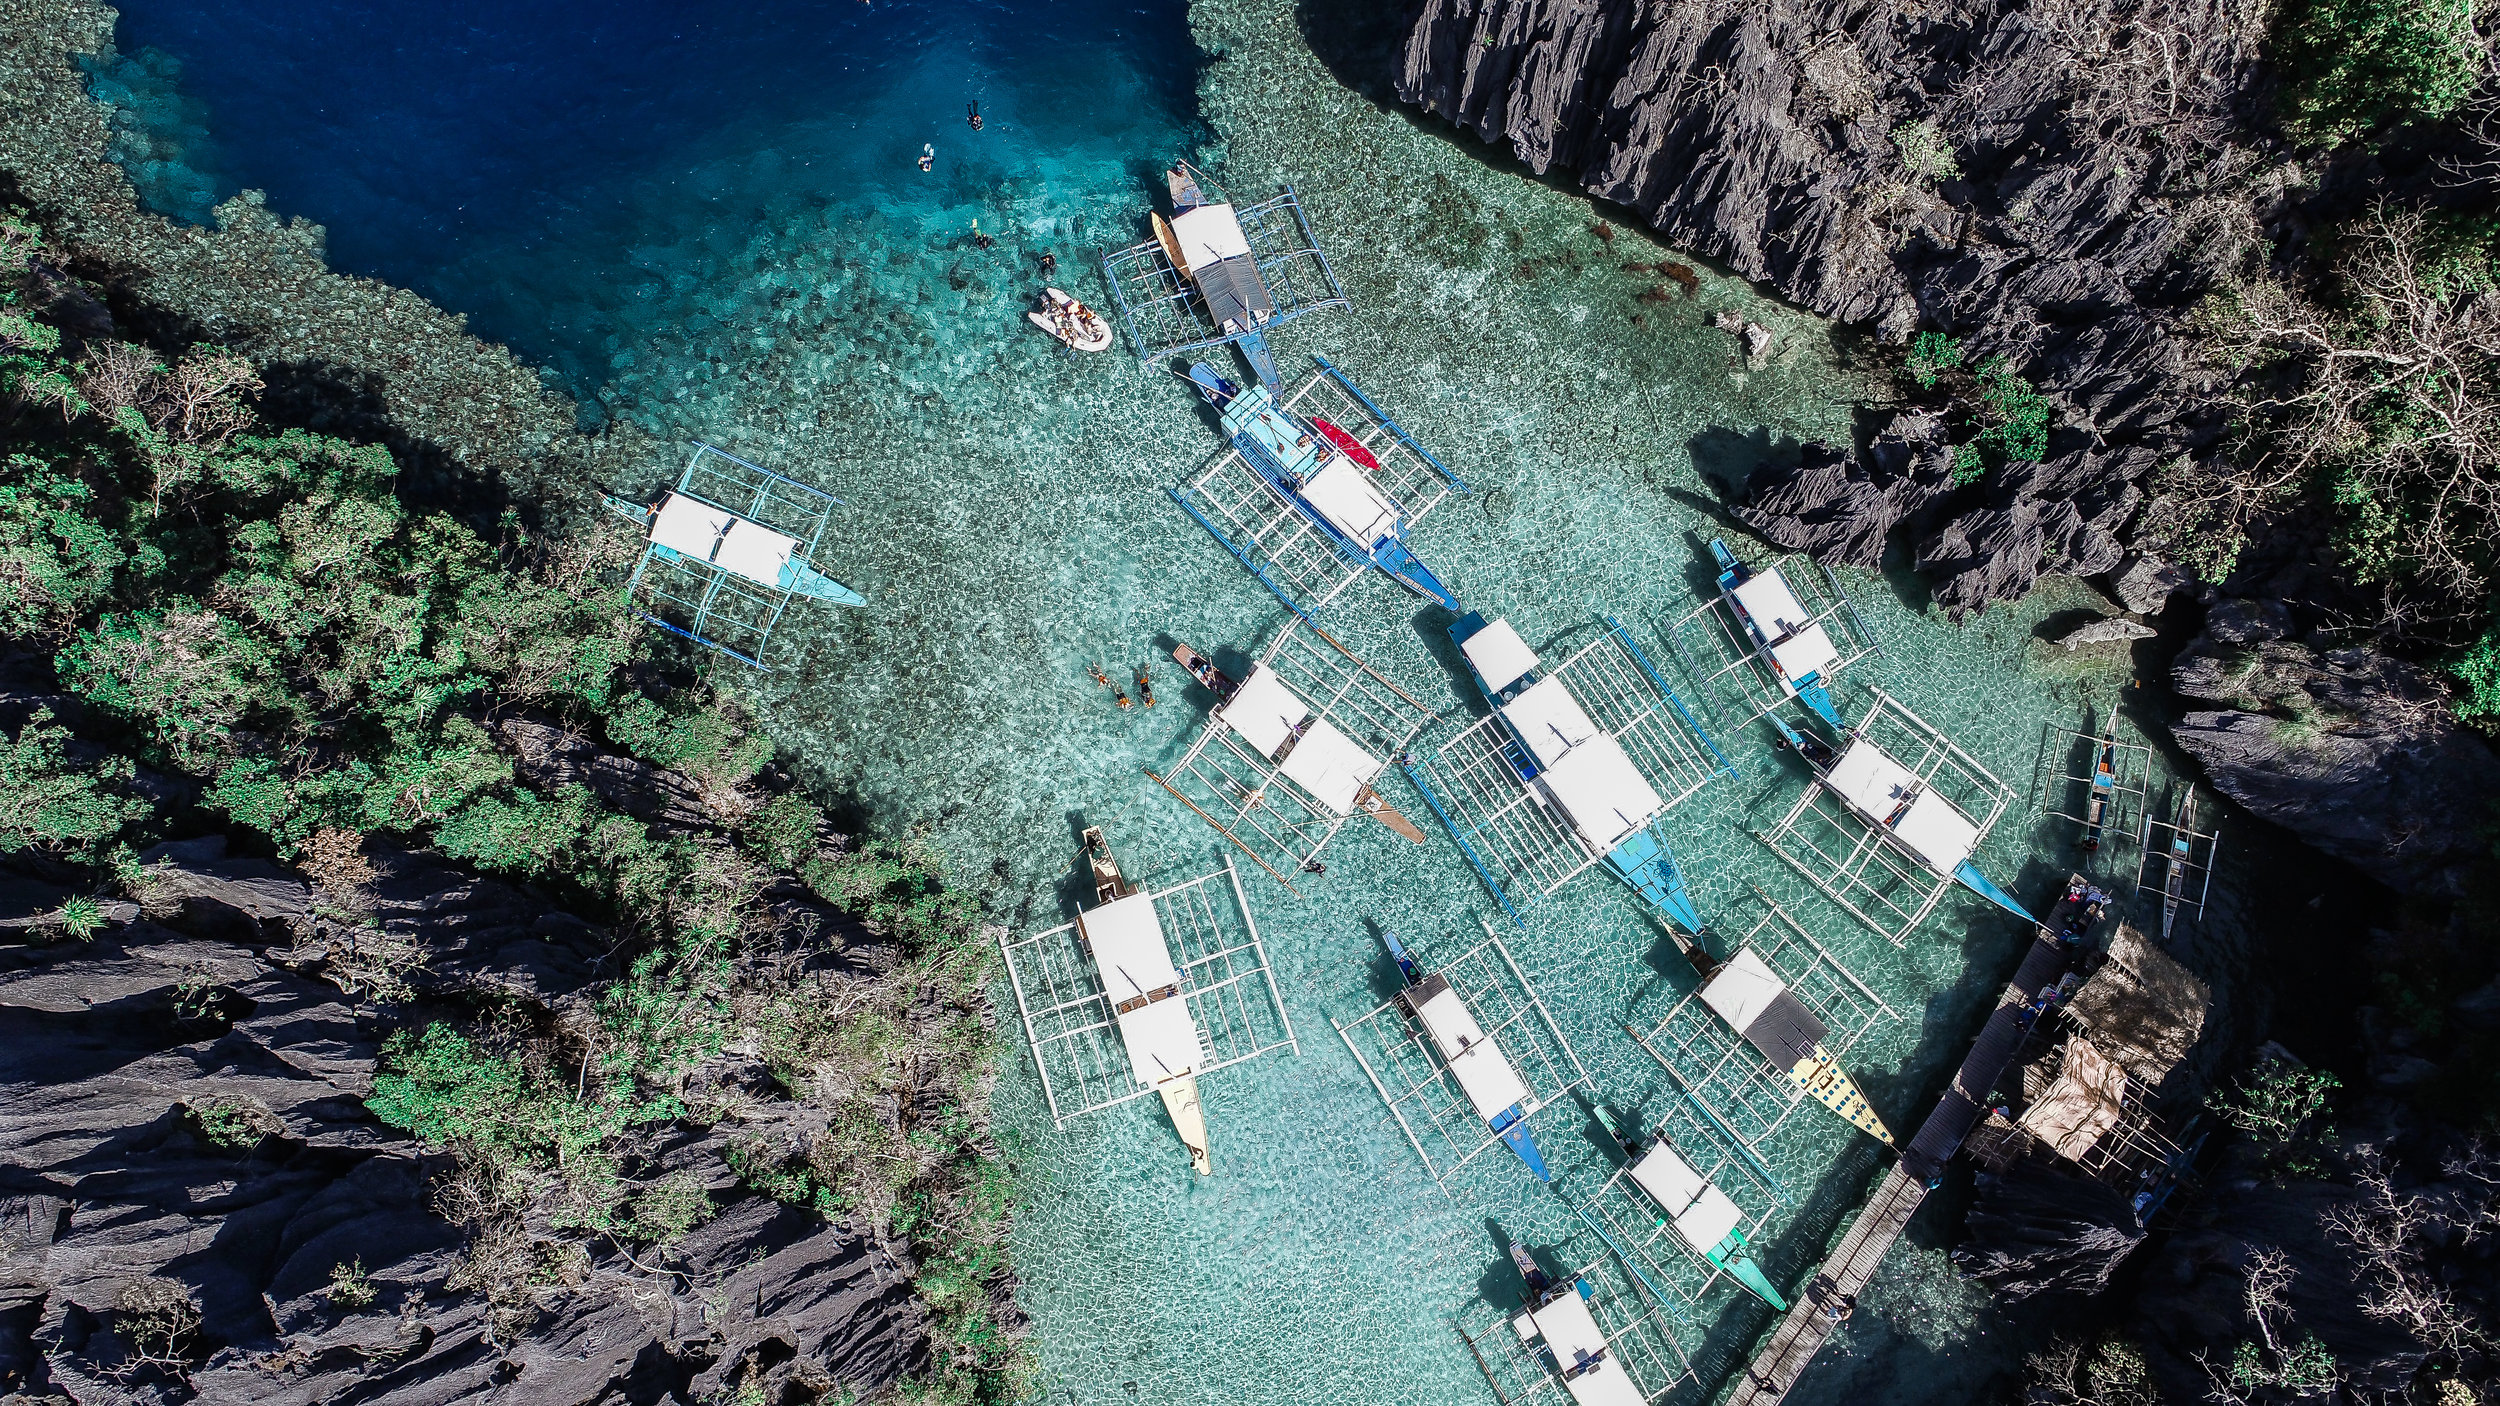 Busy morning at Barracuda Lake in Coron, Philippines